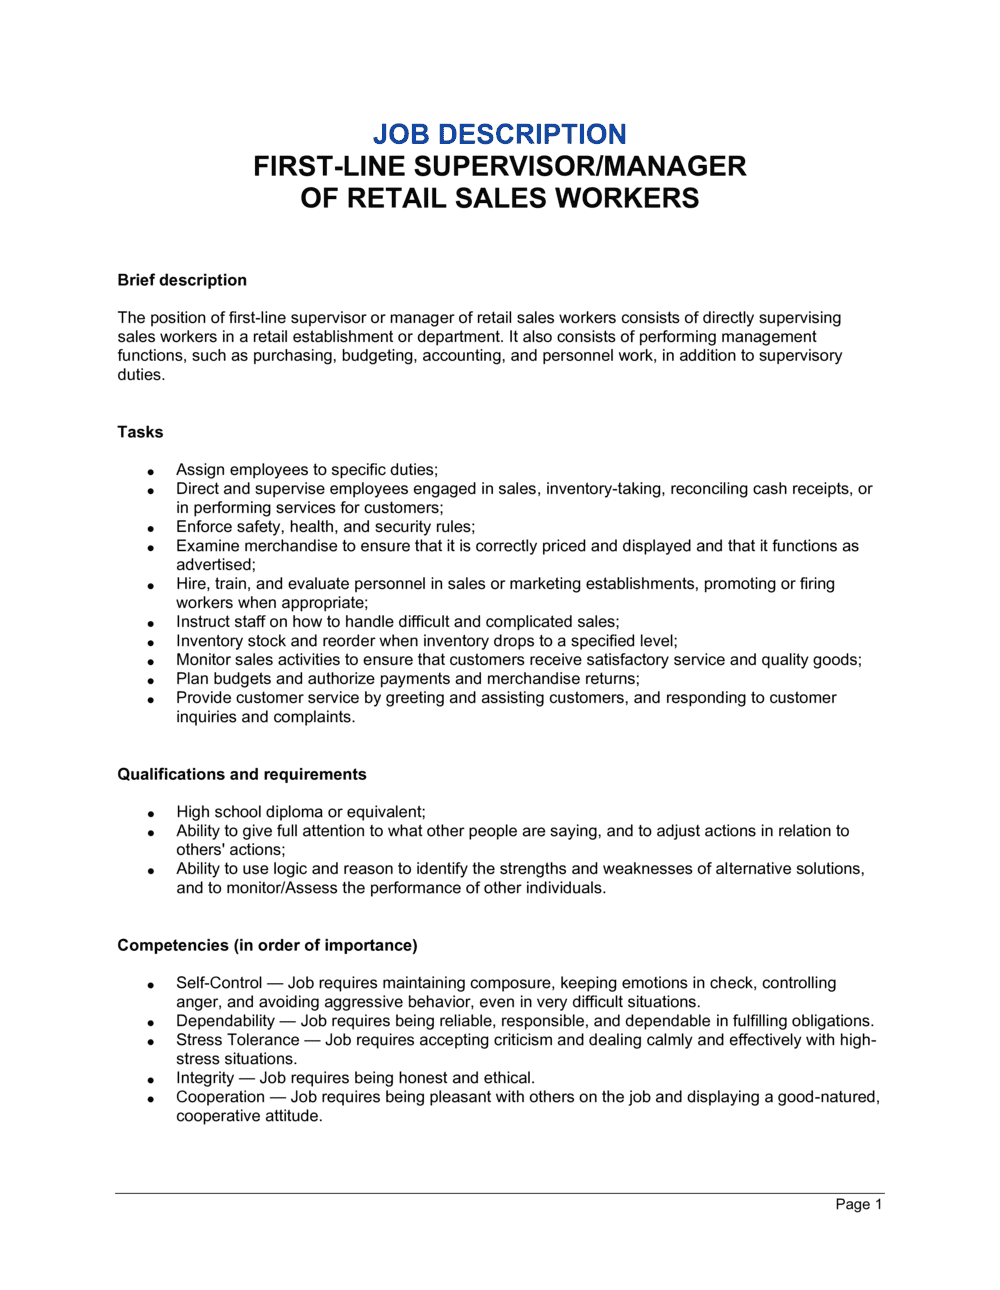 Business-in-a-Box's First-Line Supervisor or Manager of Retail Sales Workers Job Description Template